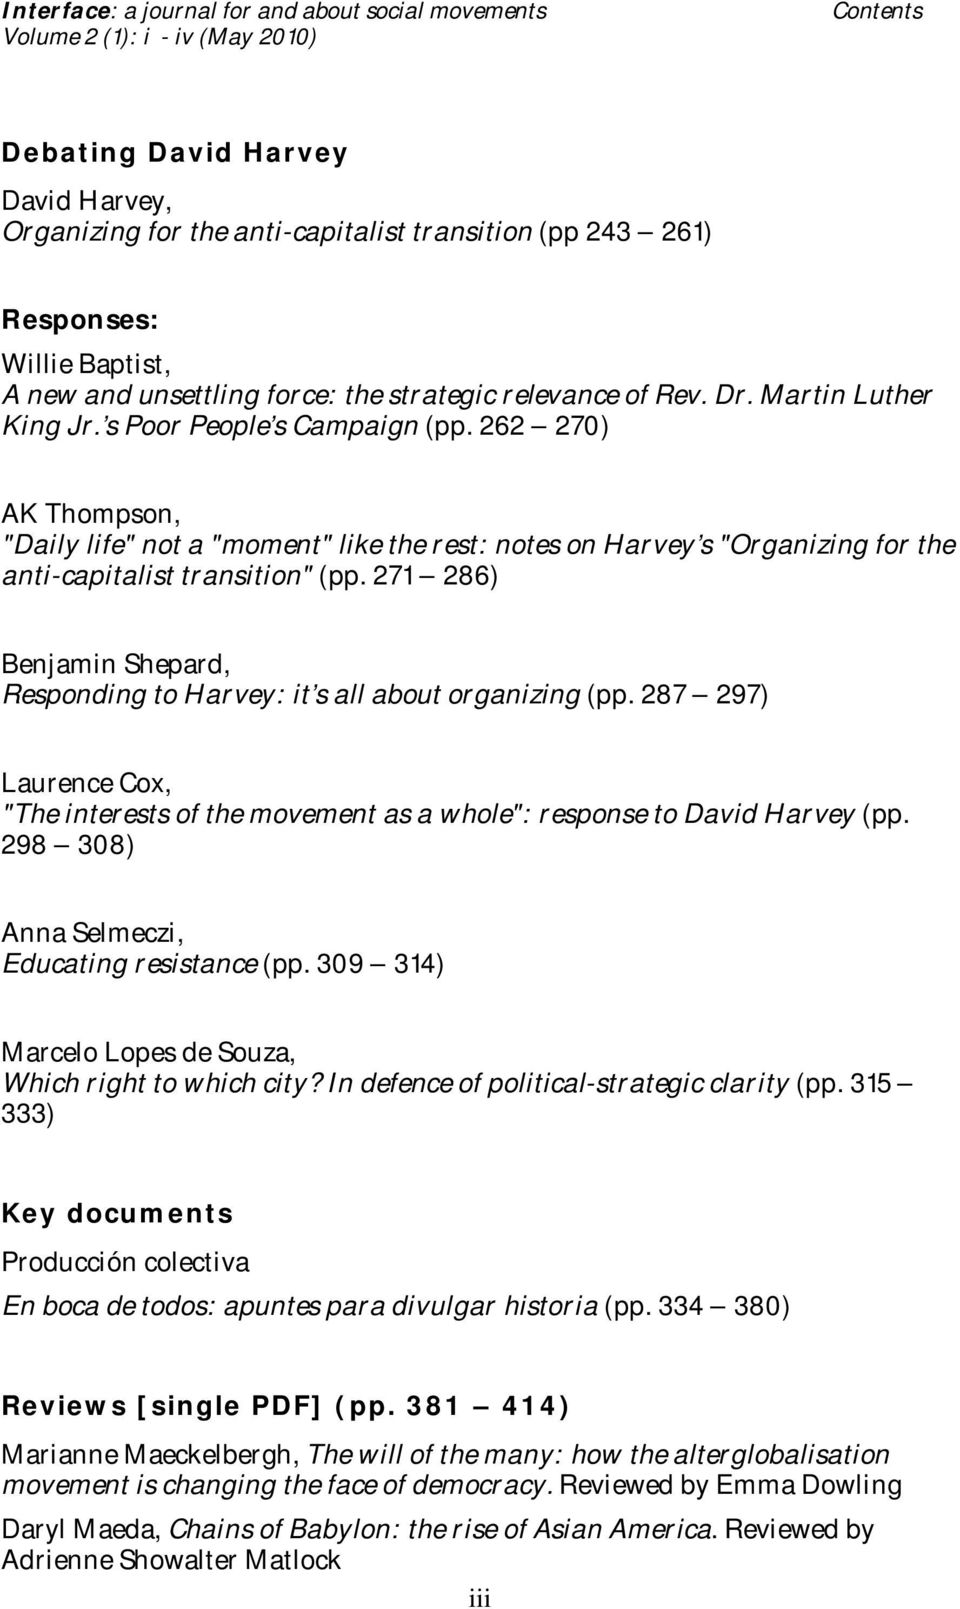 "262 270) AK Thompson, ""Daily life"" not a ""moment"" like the rest: notes on Harvey s ""Organizing for the anti-capitalist transition"" (pp."